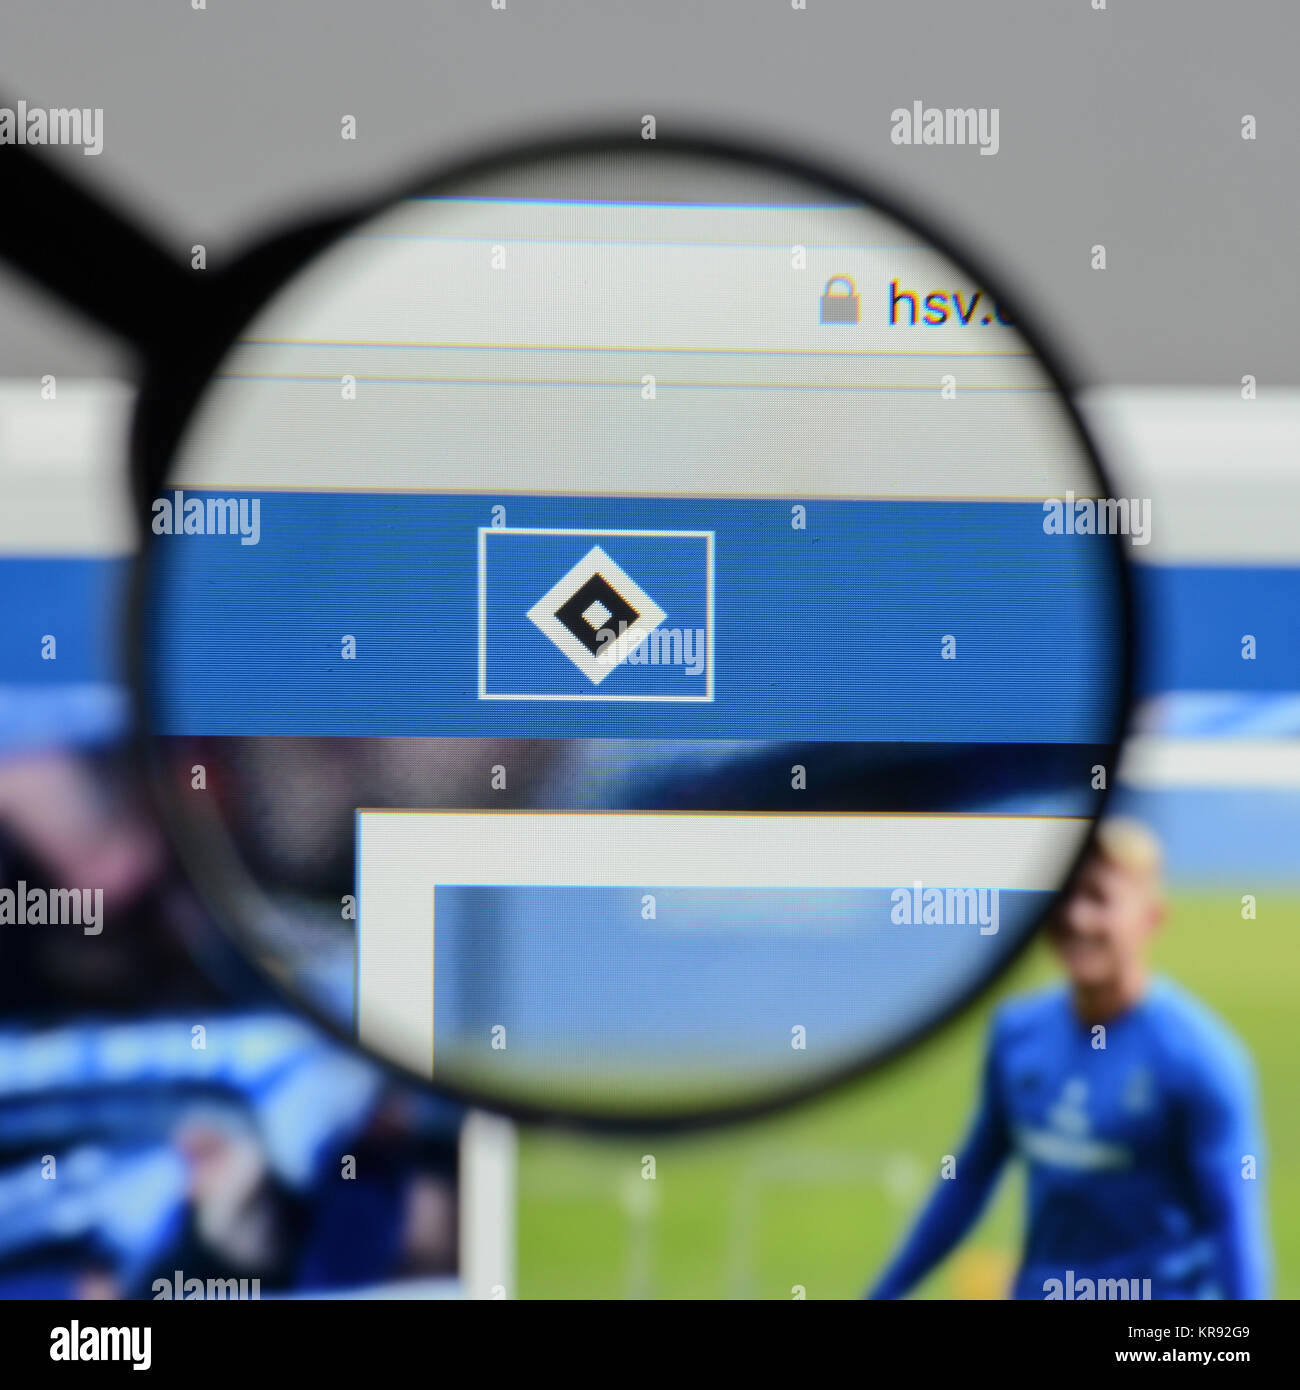 Milan, Italy - August 10, 2017: Hamburger SV website homepage. It is a German sport club based in Hamburg. HSV logo - Stock Image